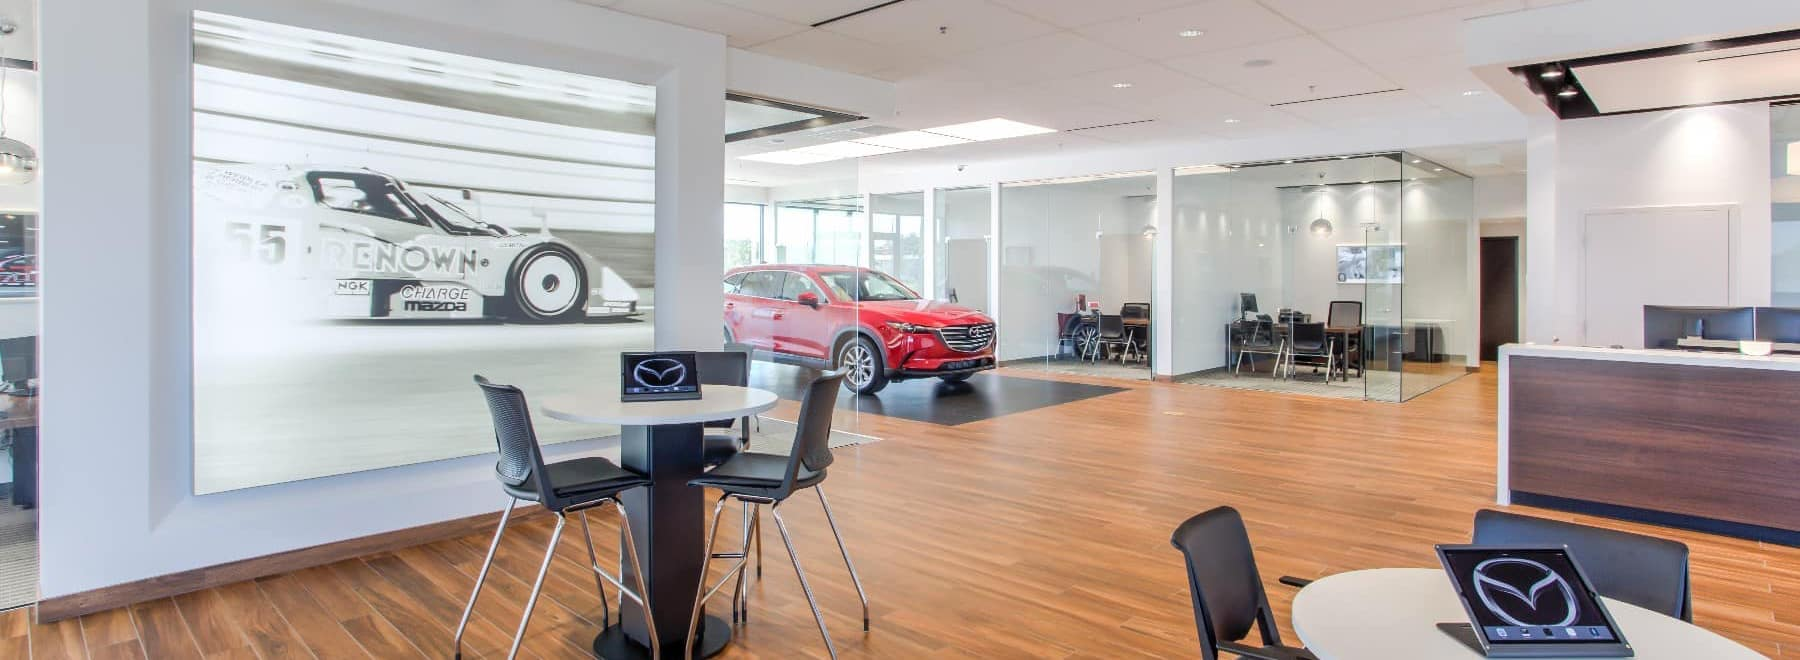 Mazda Dealership Near Me >> Sport Mazda In Orlando Fl Mazda Dealer Near Me Mazda Service